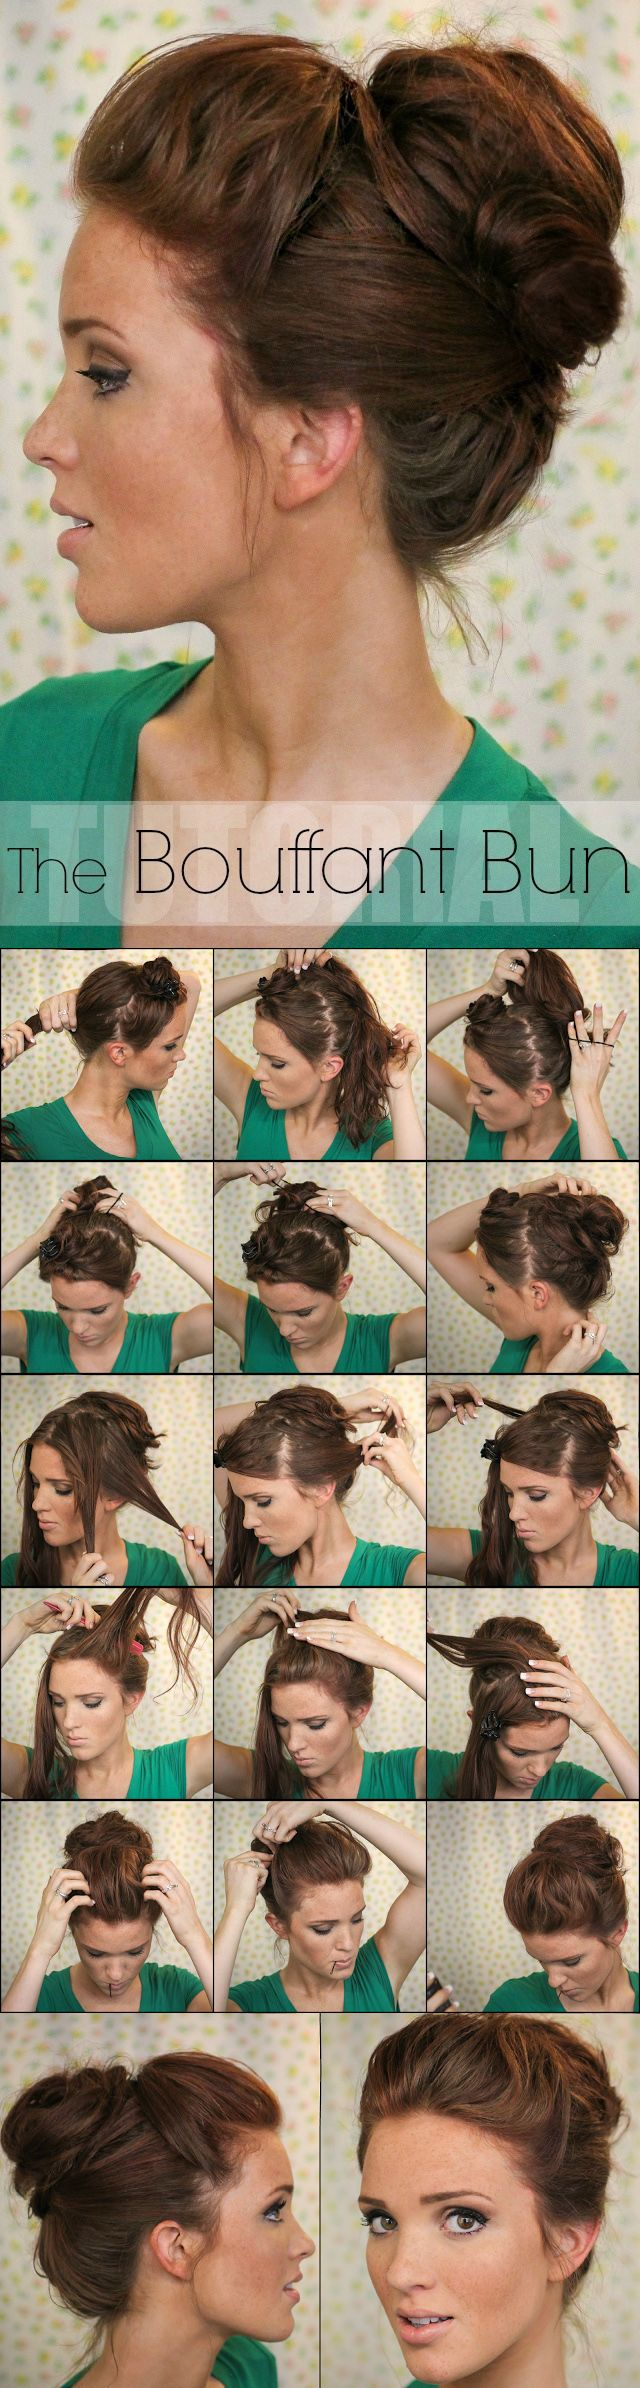 One of our hairstyle obsessions - the bouffant braid! Here's a great tutorial!